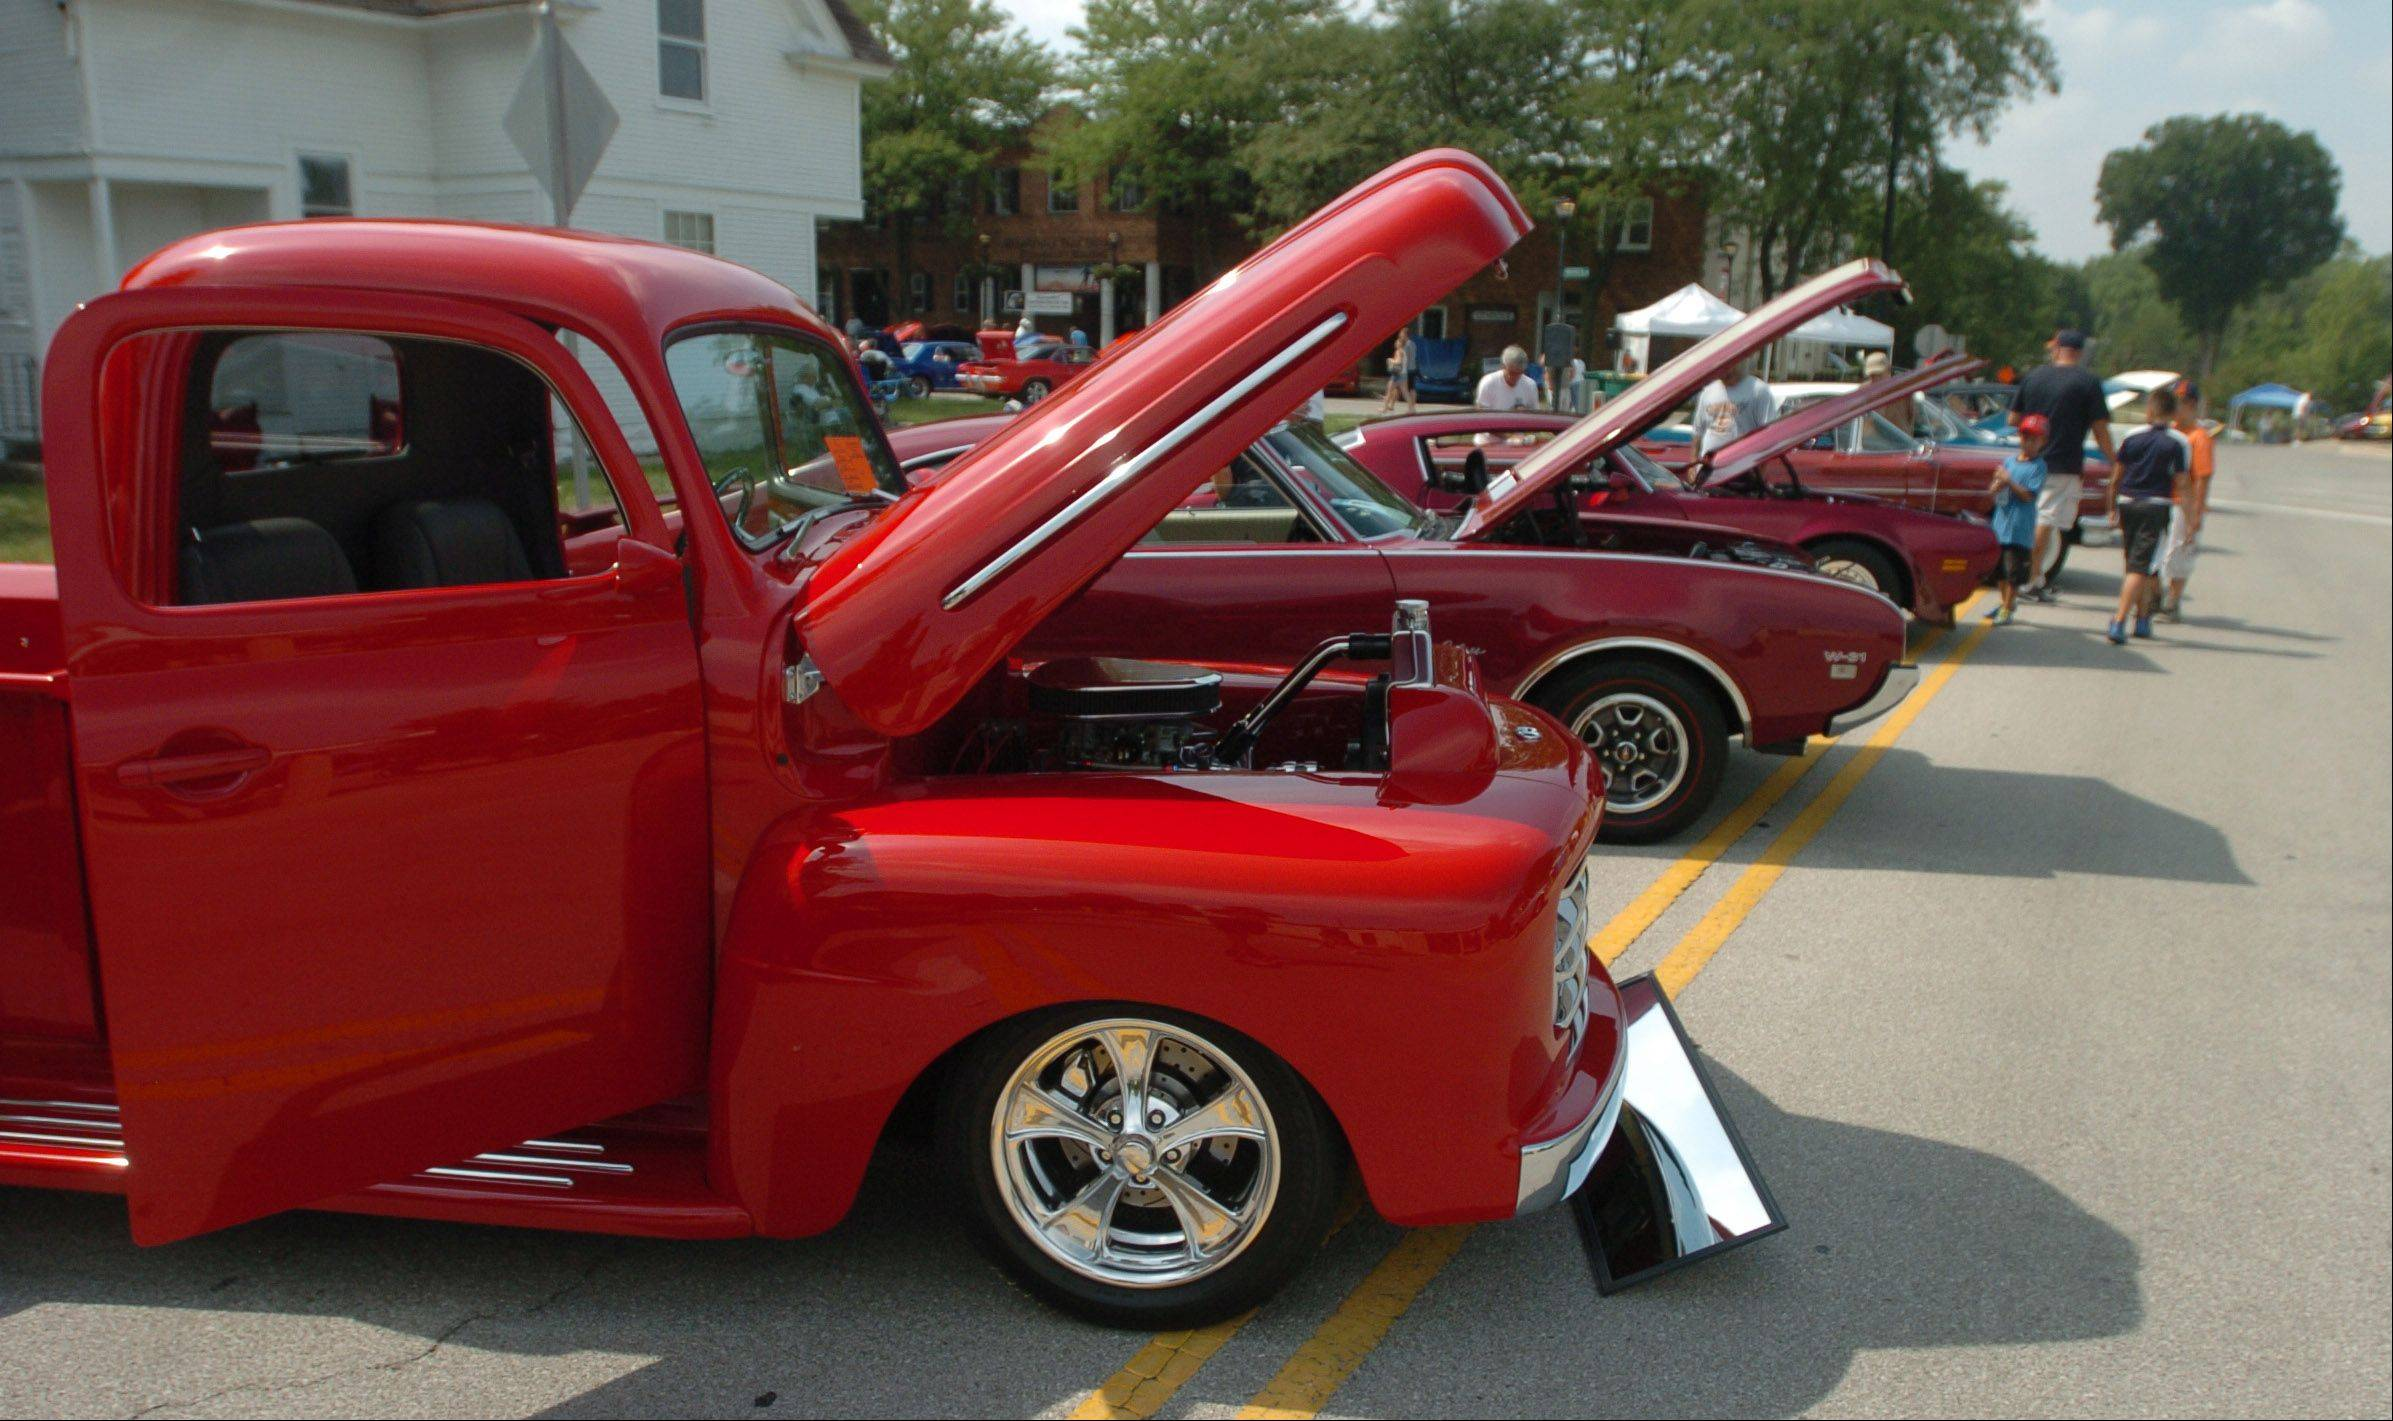 The car show at Summer Daze in Warrenville offered 80 cars for auto lovers to inspect and admire. The festival also included music, food, bounce houses and a zip line.